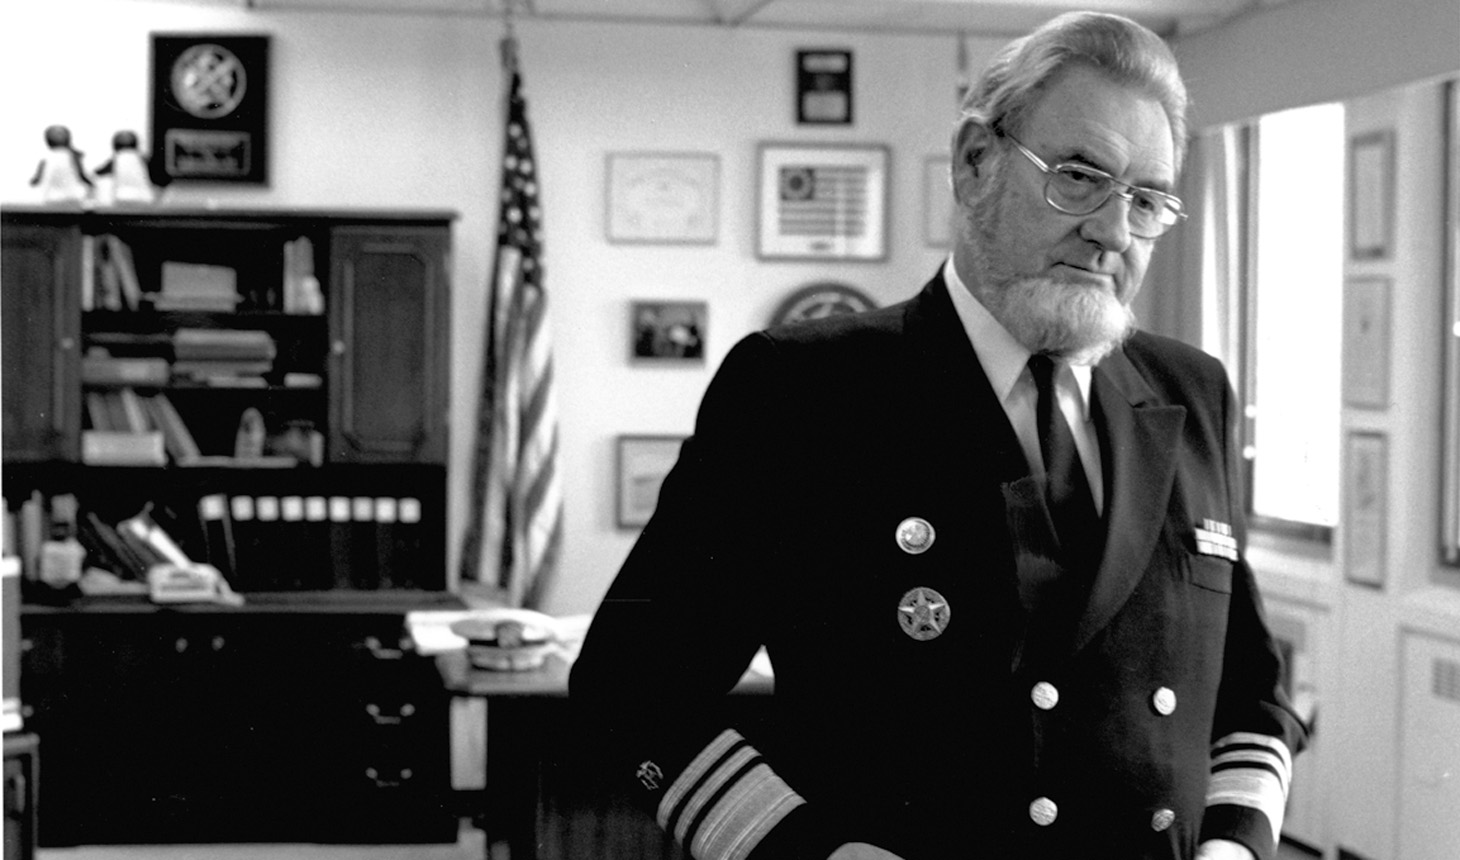 Lila May Walkden Flounders' support of the Koop Institute was inspired by Dr. C. Everett Koop's willingness to take on big challenges and confront powerful interests as Surgeon General in the 1980s.